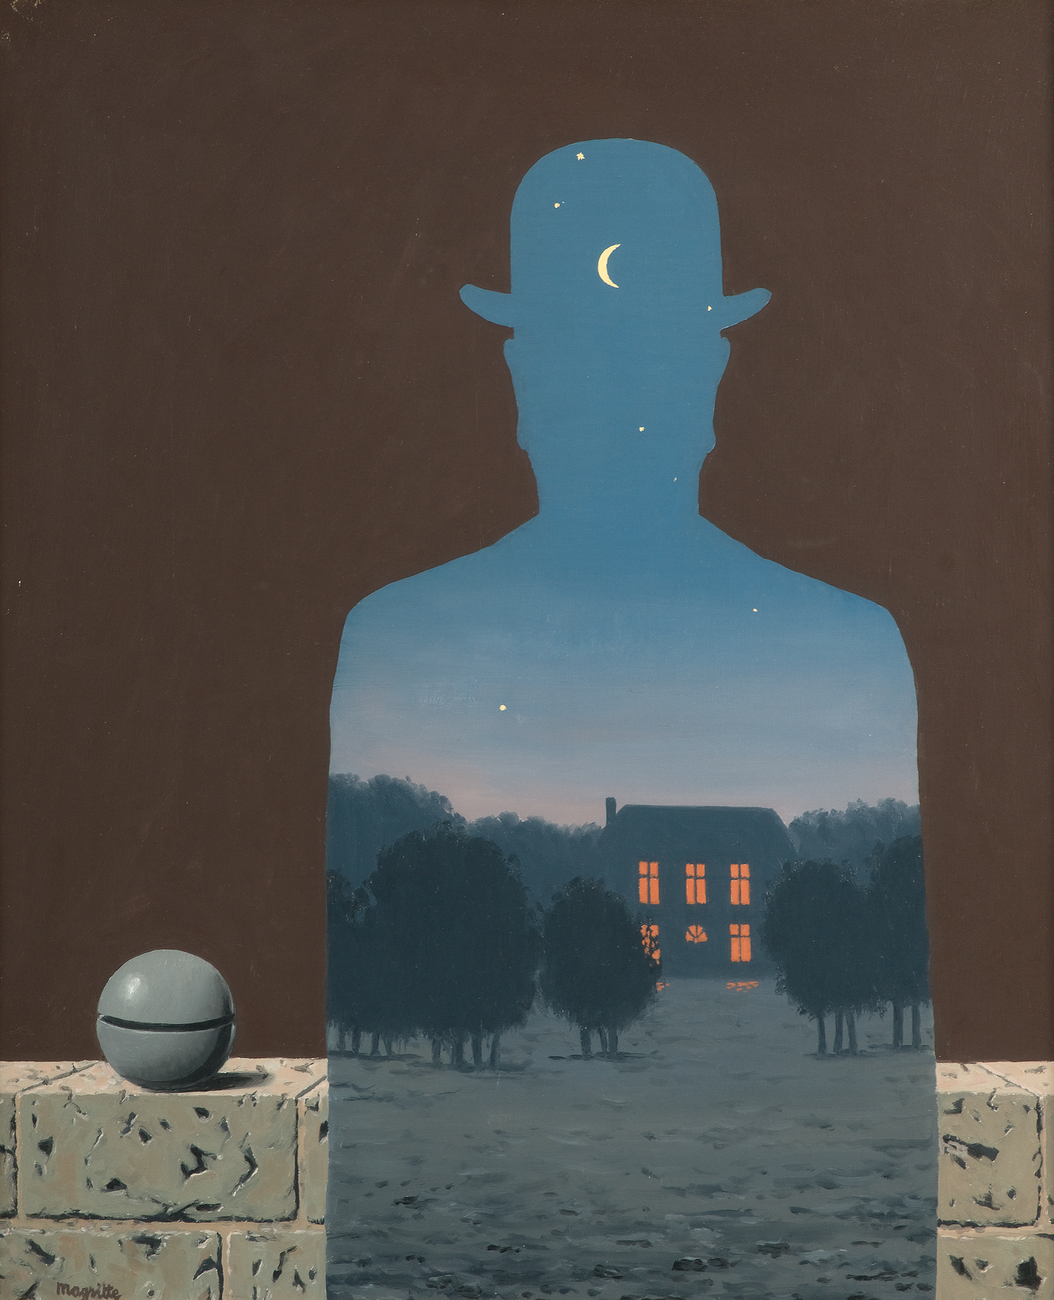 An evening scene of a house surrounded by trees is contained within the silouette a man in a bowler hat, standing in front of a stone balcony